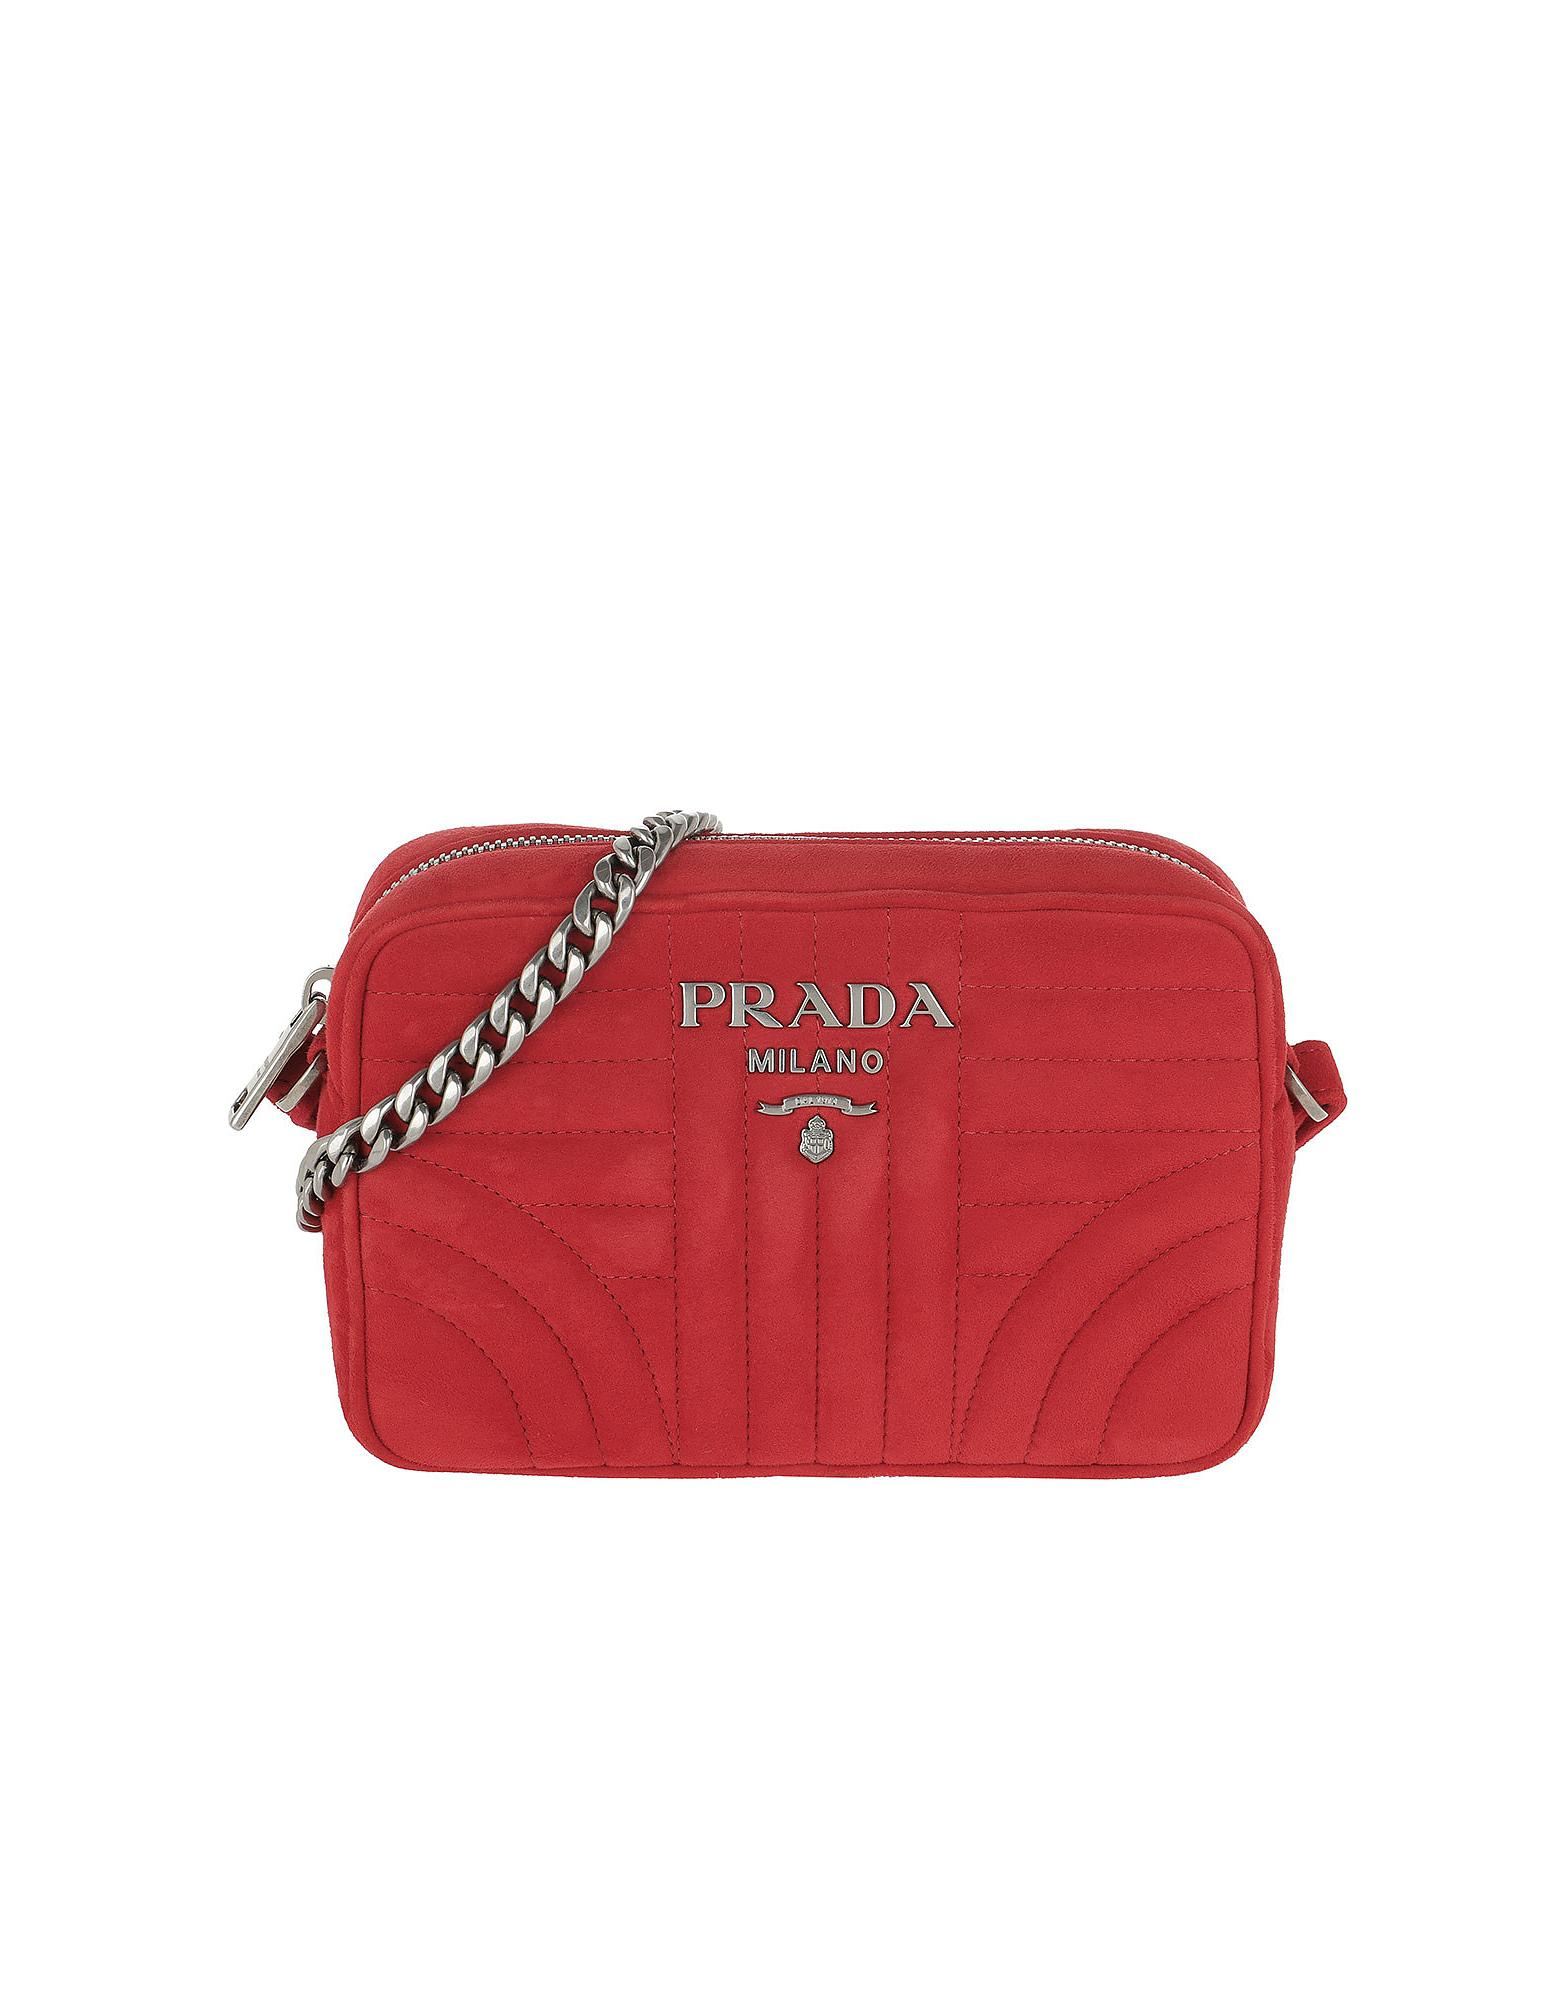 e2bd1fc43 Prada Diagramme Crossbody Bag Suede Rosso in Red - Lyst